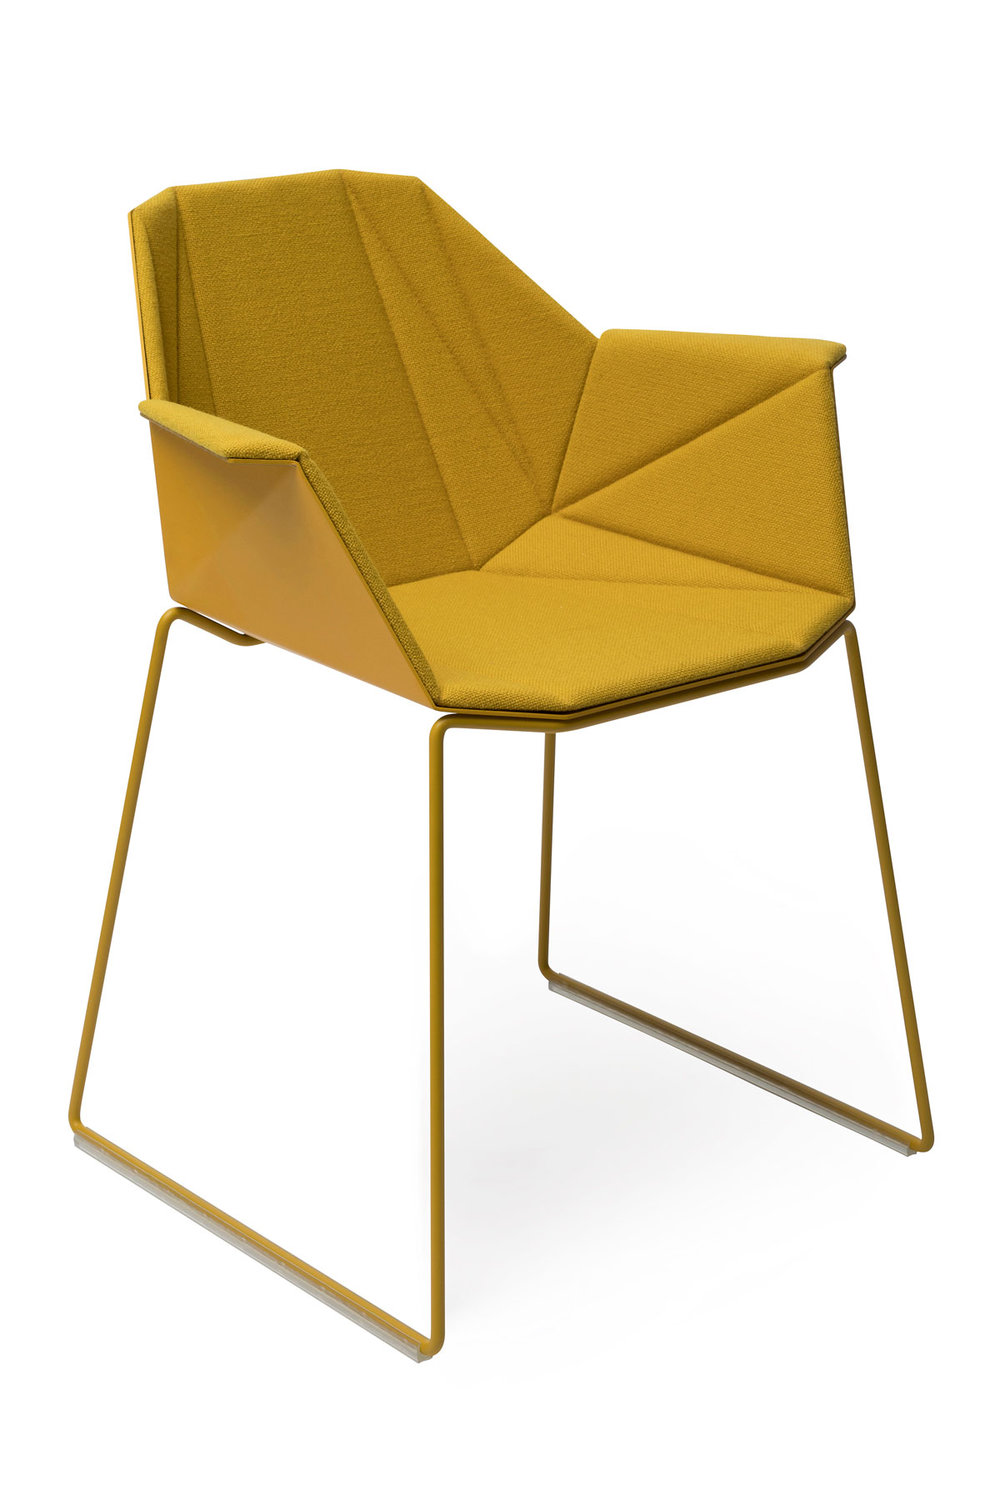 Alumni-Sledge-ochreous-yellow-upholstered_side-angle.jpg